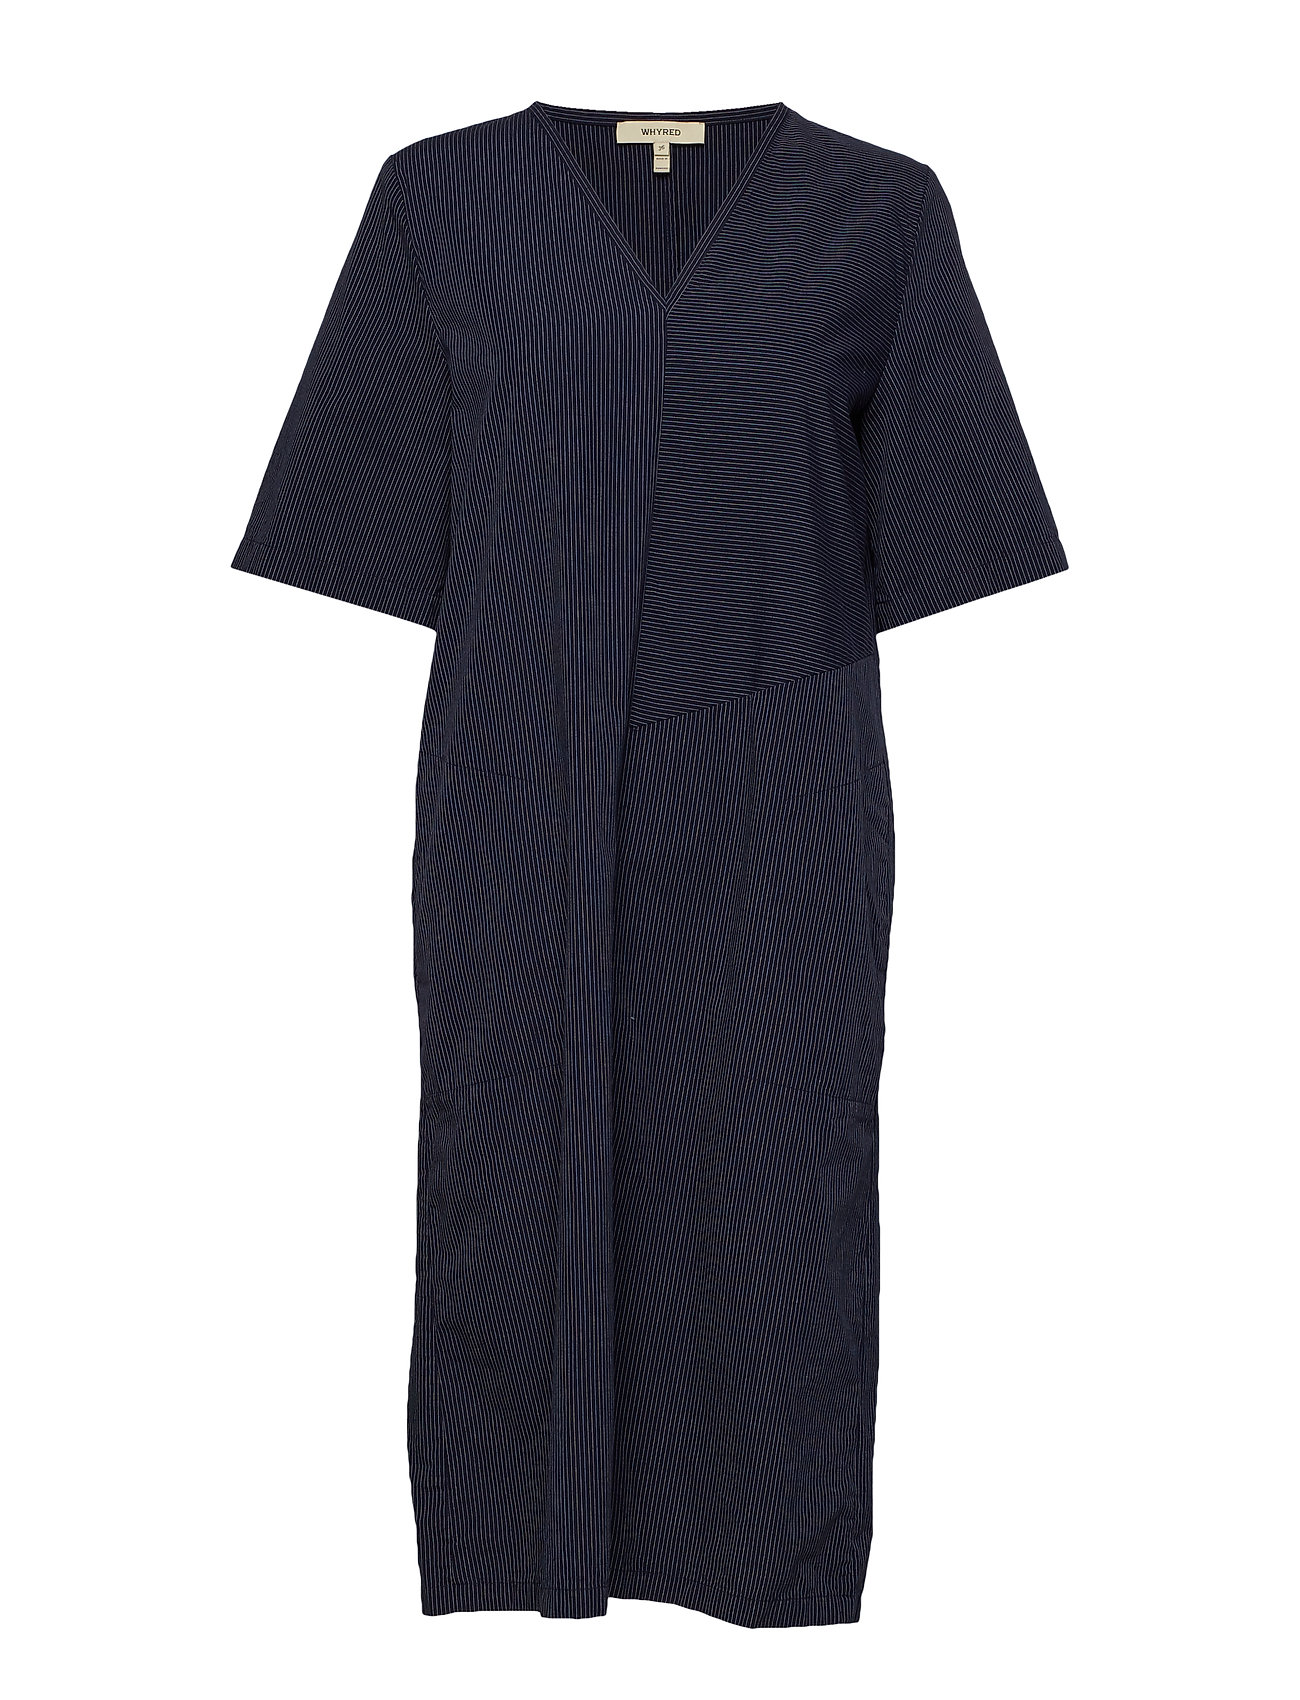 Whyred DIX  STRIPE - CLASSIC NAVY